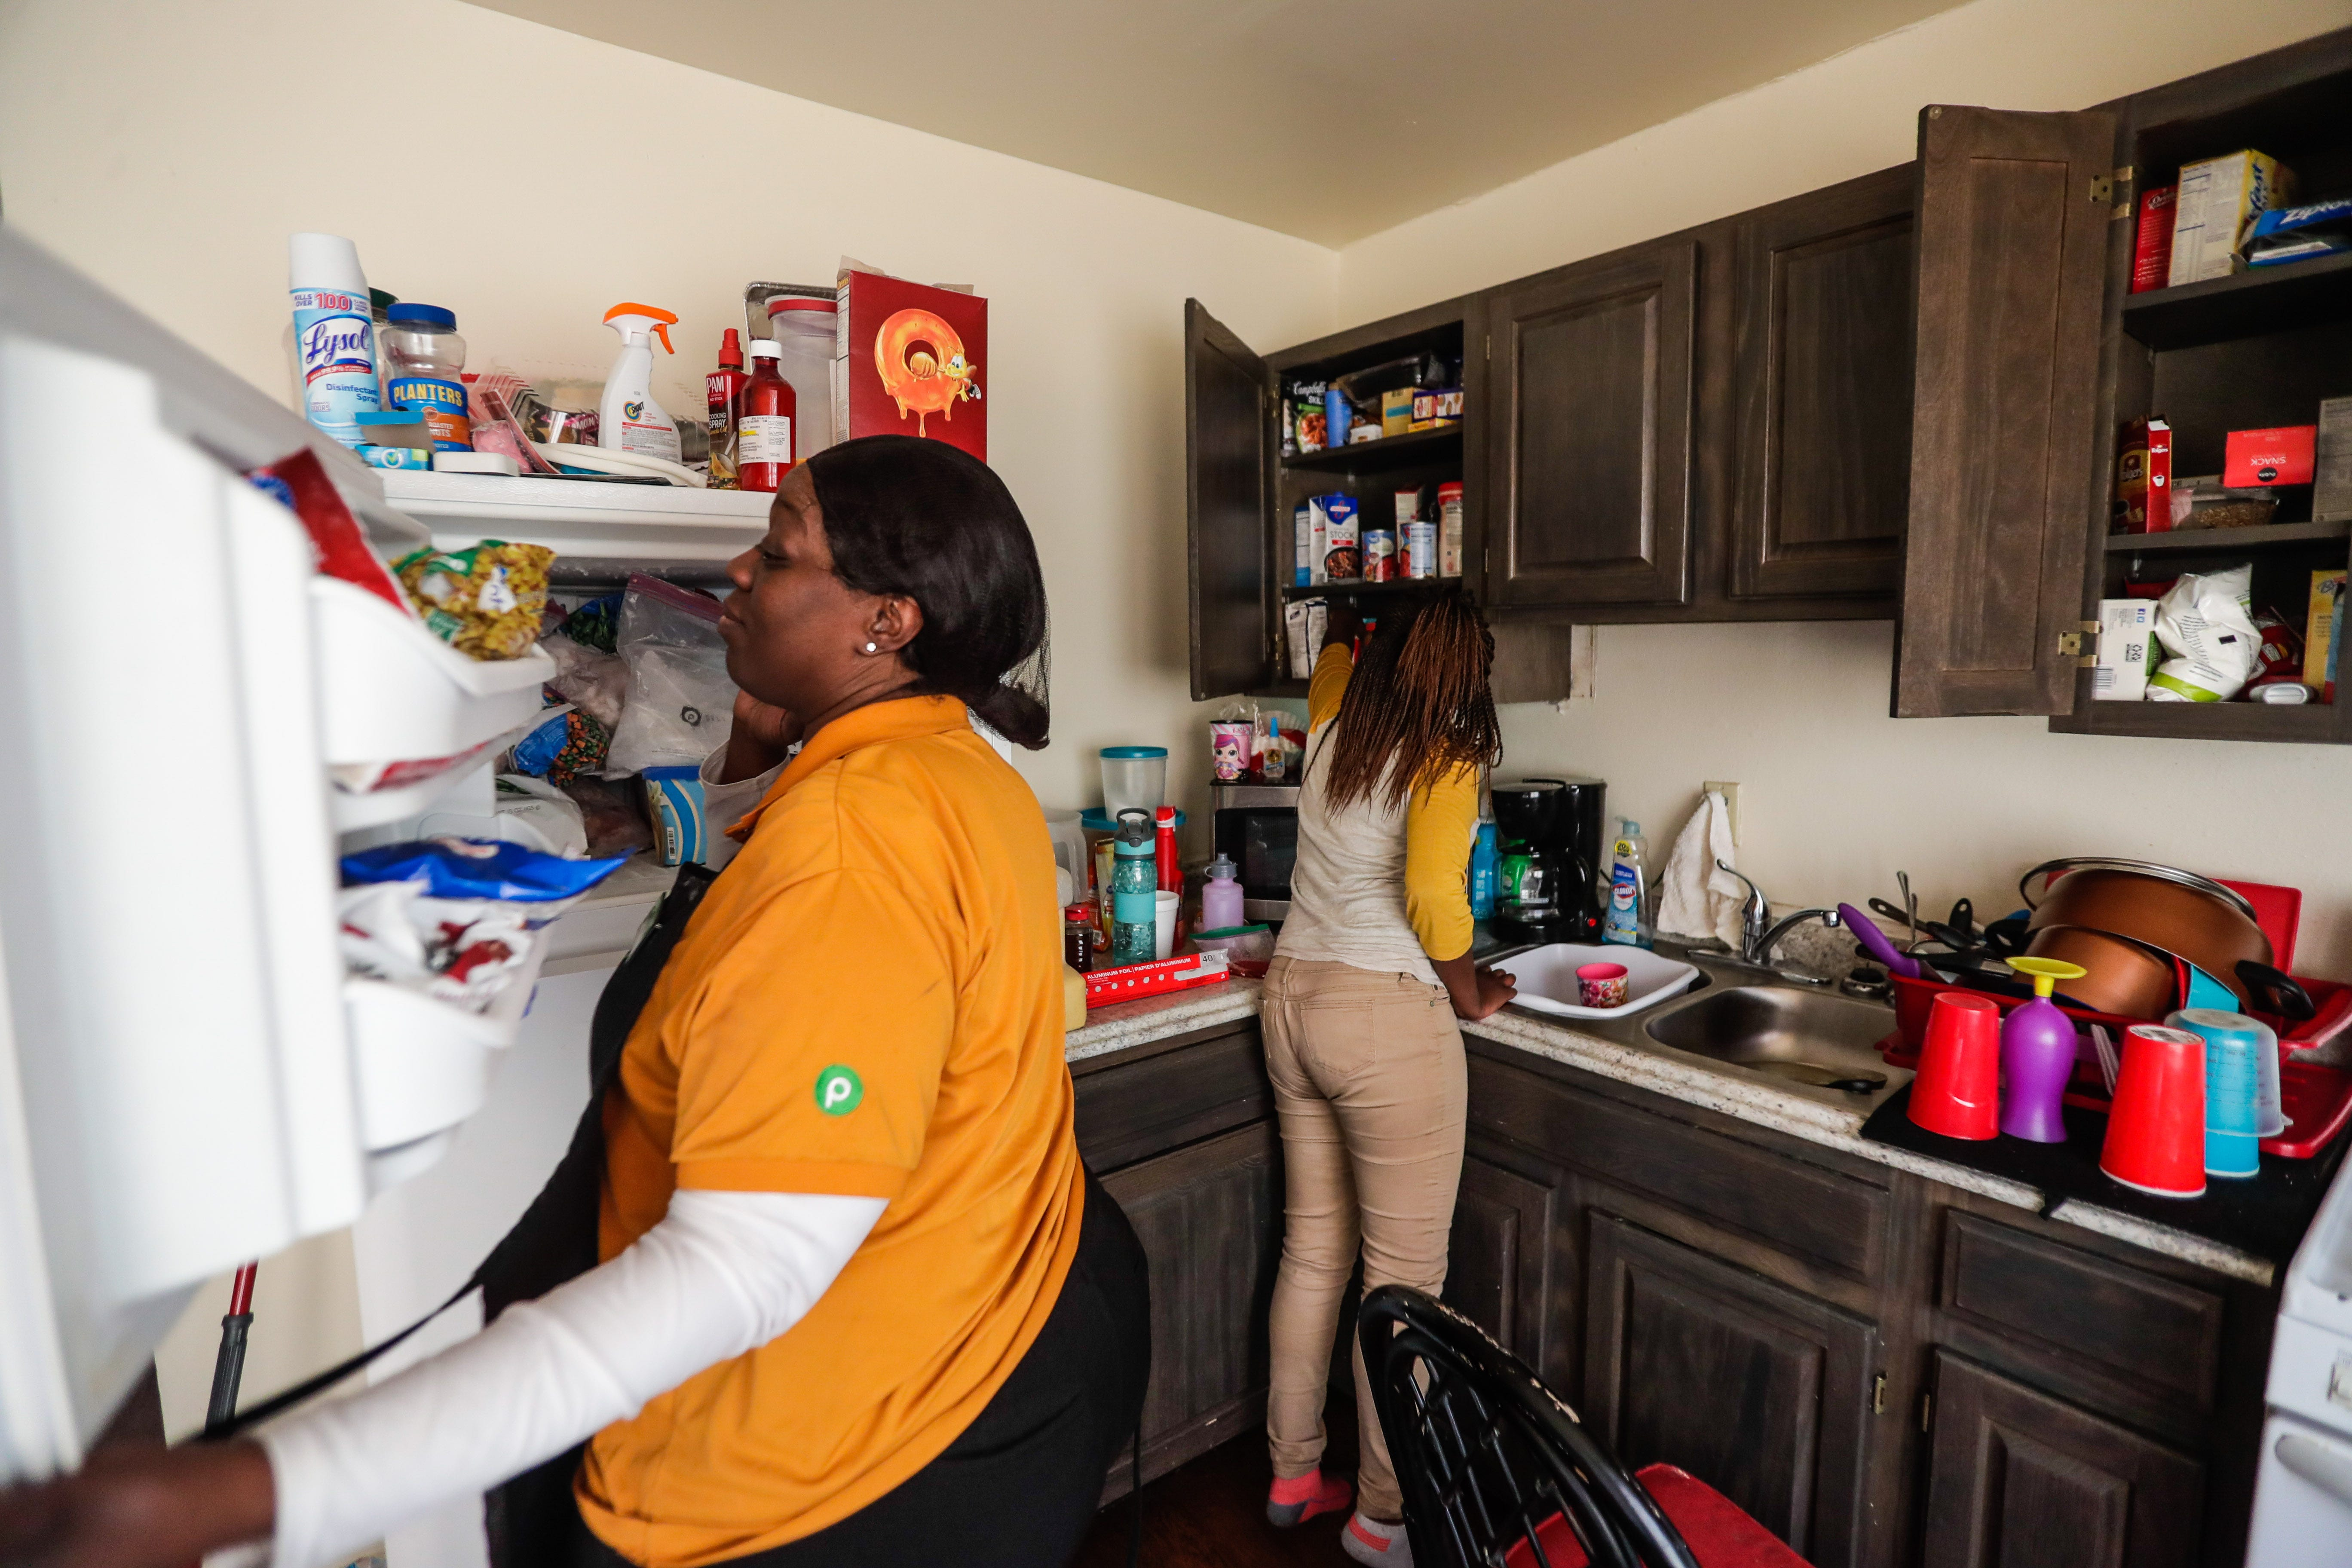 """Kisha Simms, 38, and her daughter Deitra """"DeeDee"""" Jackson, 11, look for afternoon snacks in their kitchen."""